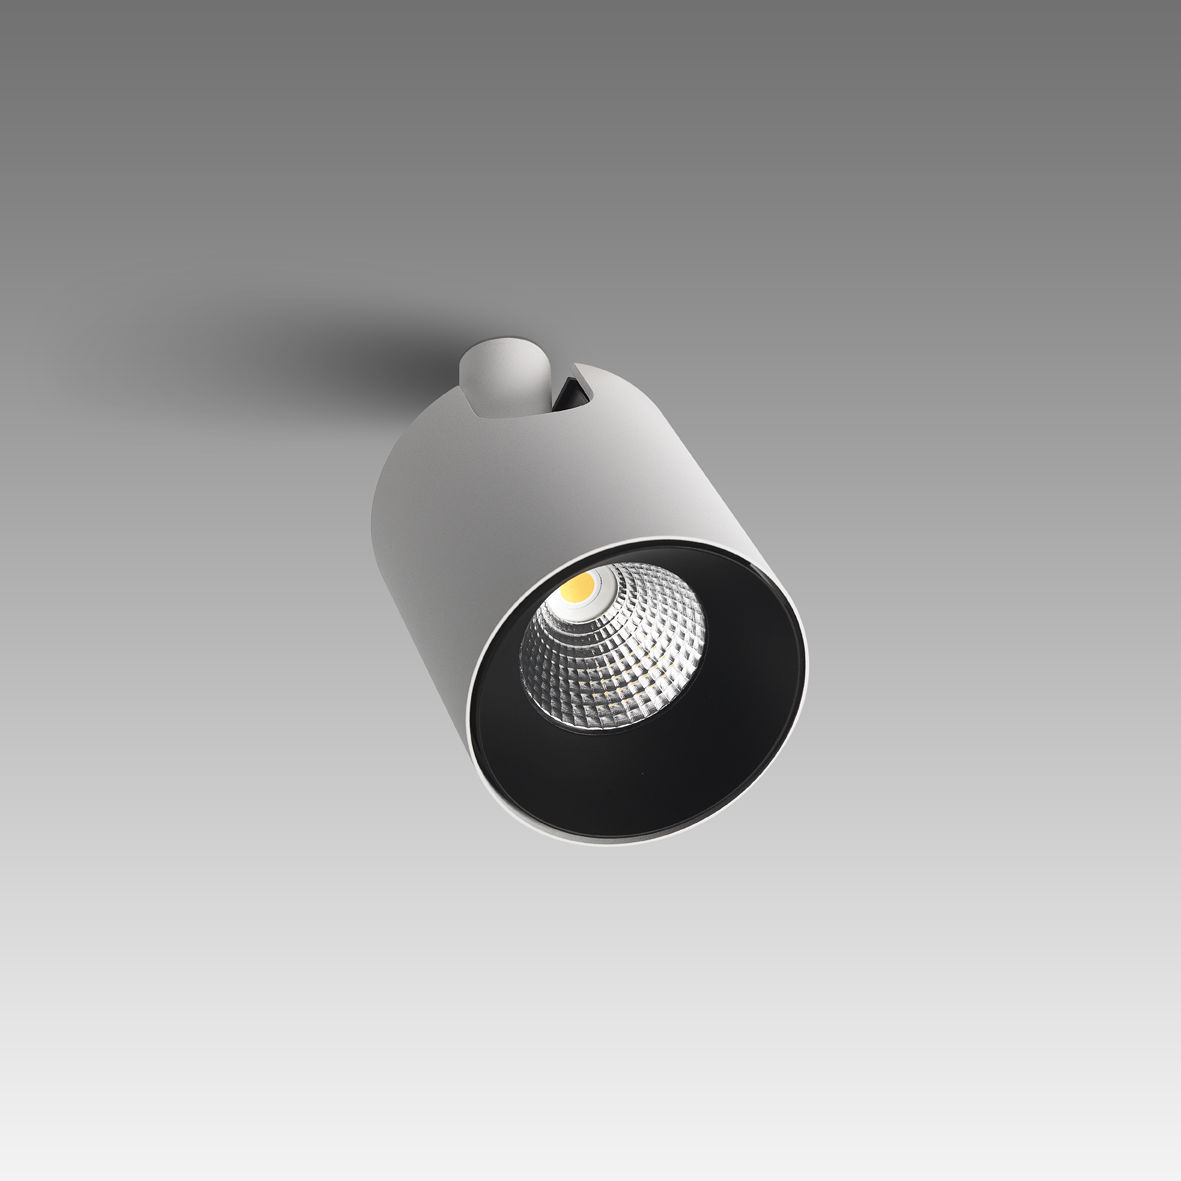 Spot Led Exterieur Orientable Spot De Plafond à Led En Métal Orientable Tublr Orbit Nv